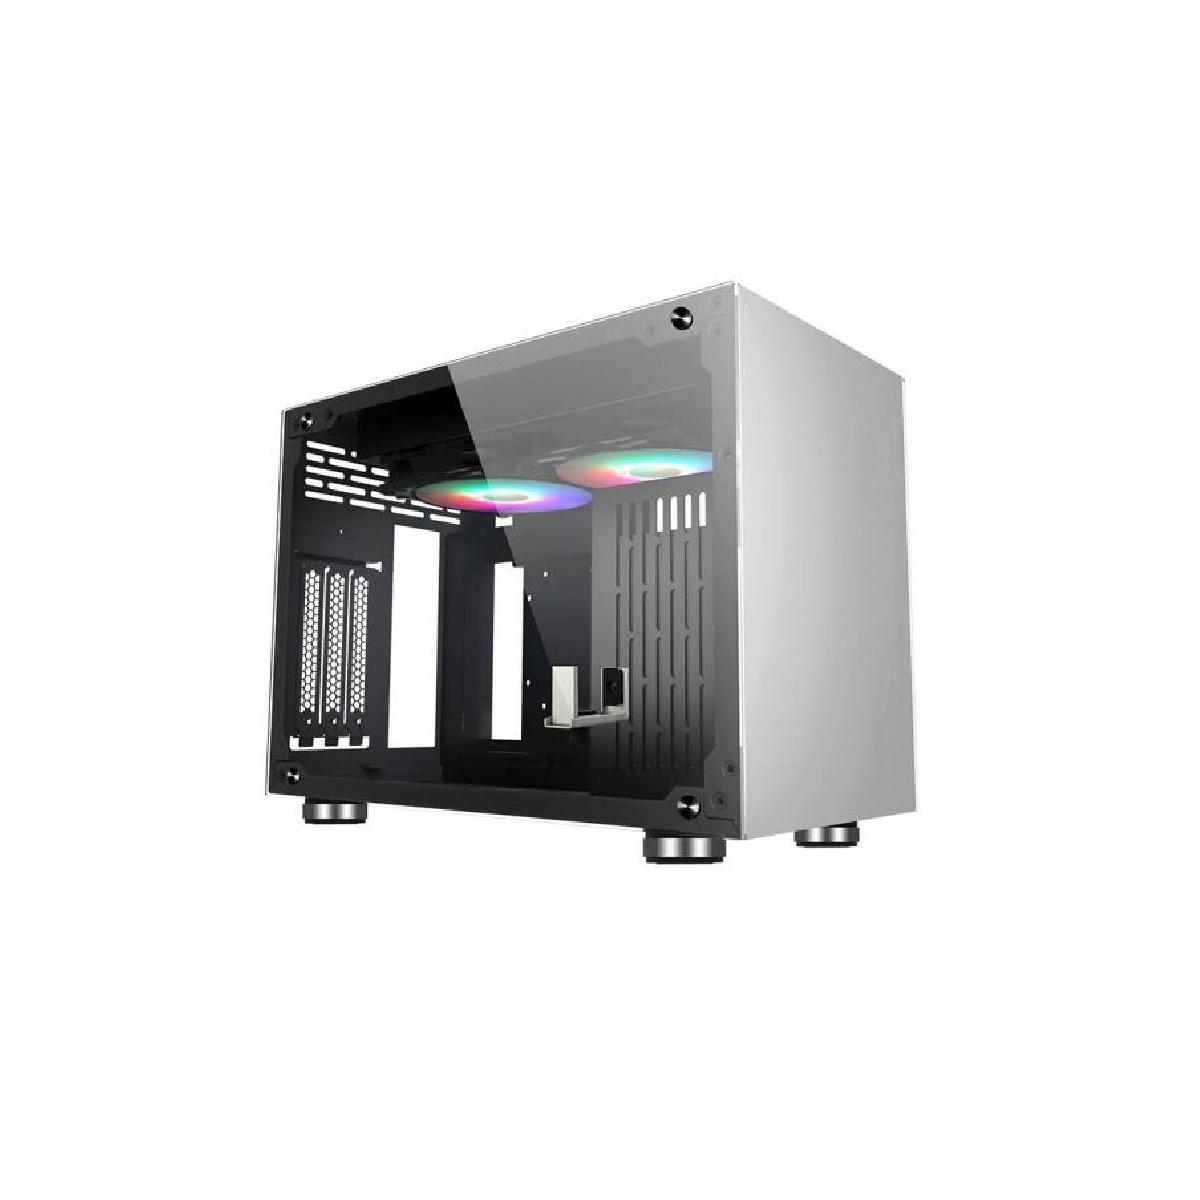 Case Mini-ITX Noua Parvus Q2 Metallo 4*USB3.0/2.0 Dual Side Glass